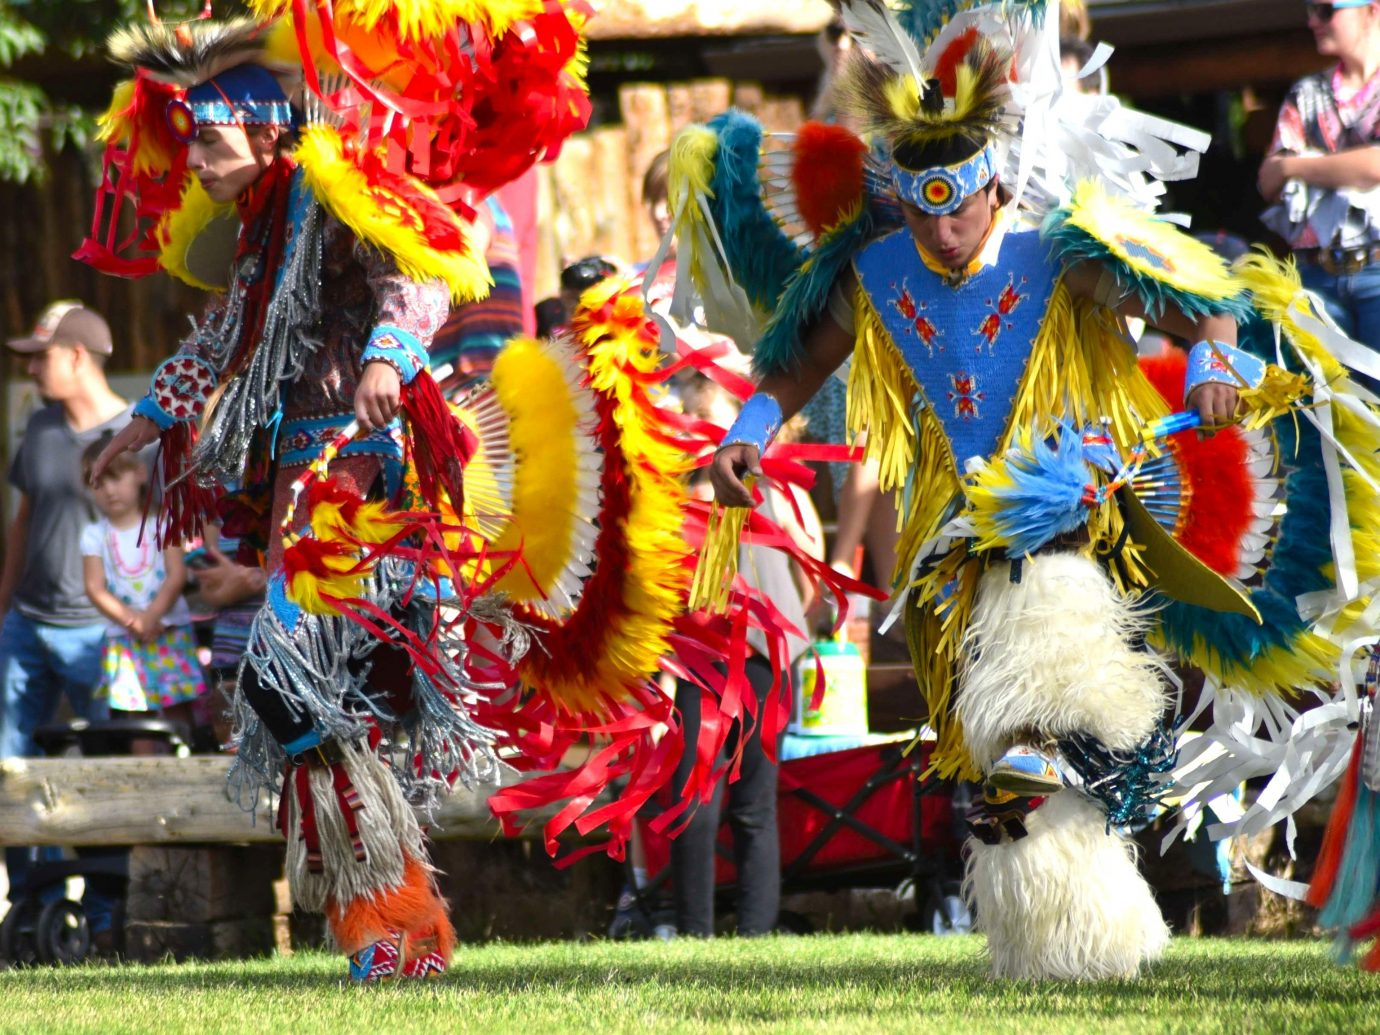 Trip Ideas grass dancer outdoor Sport carnival colorful performing arts event festival sports tradition dance colored